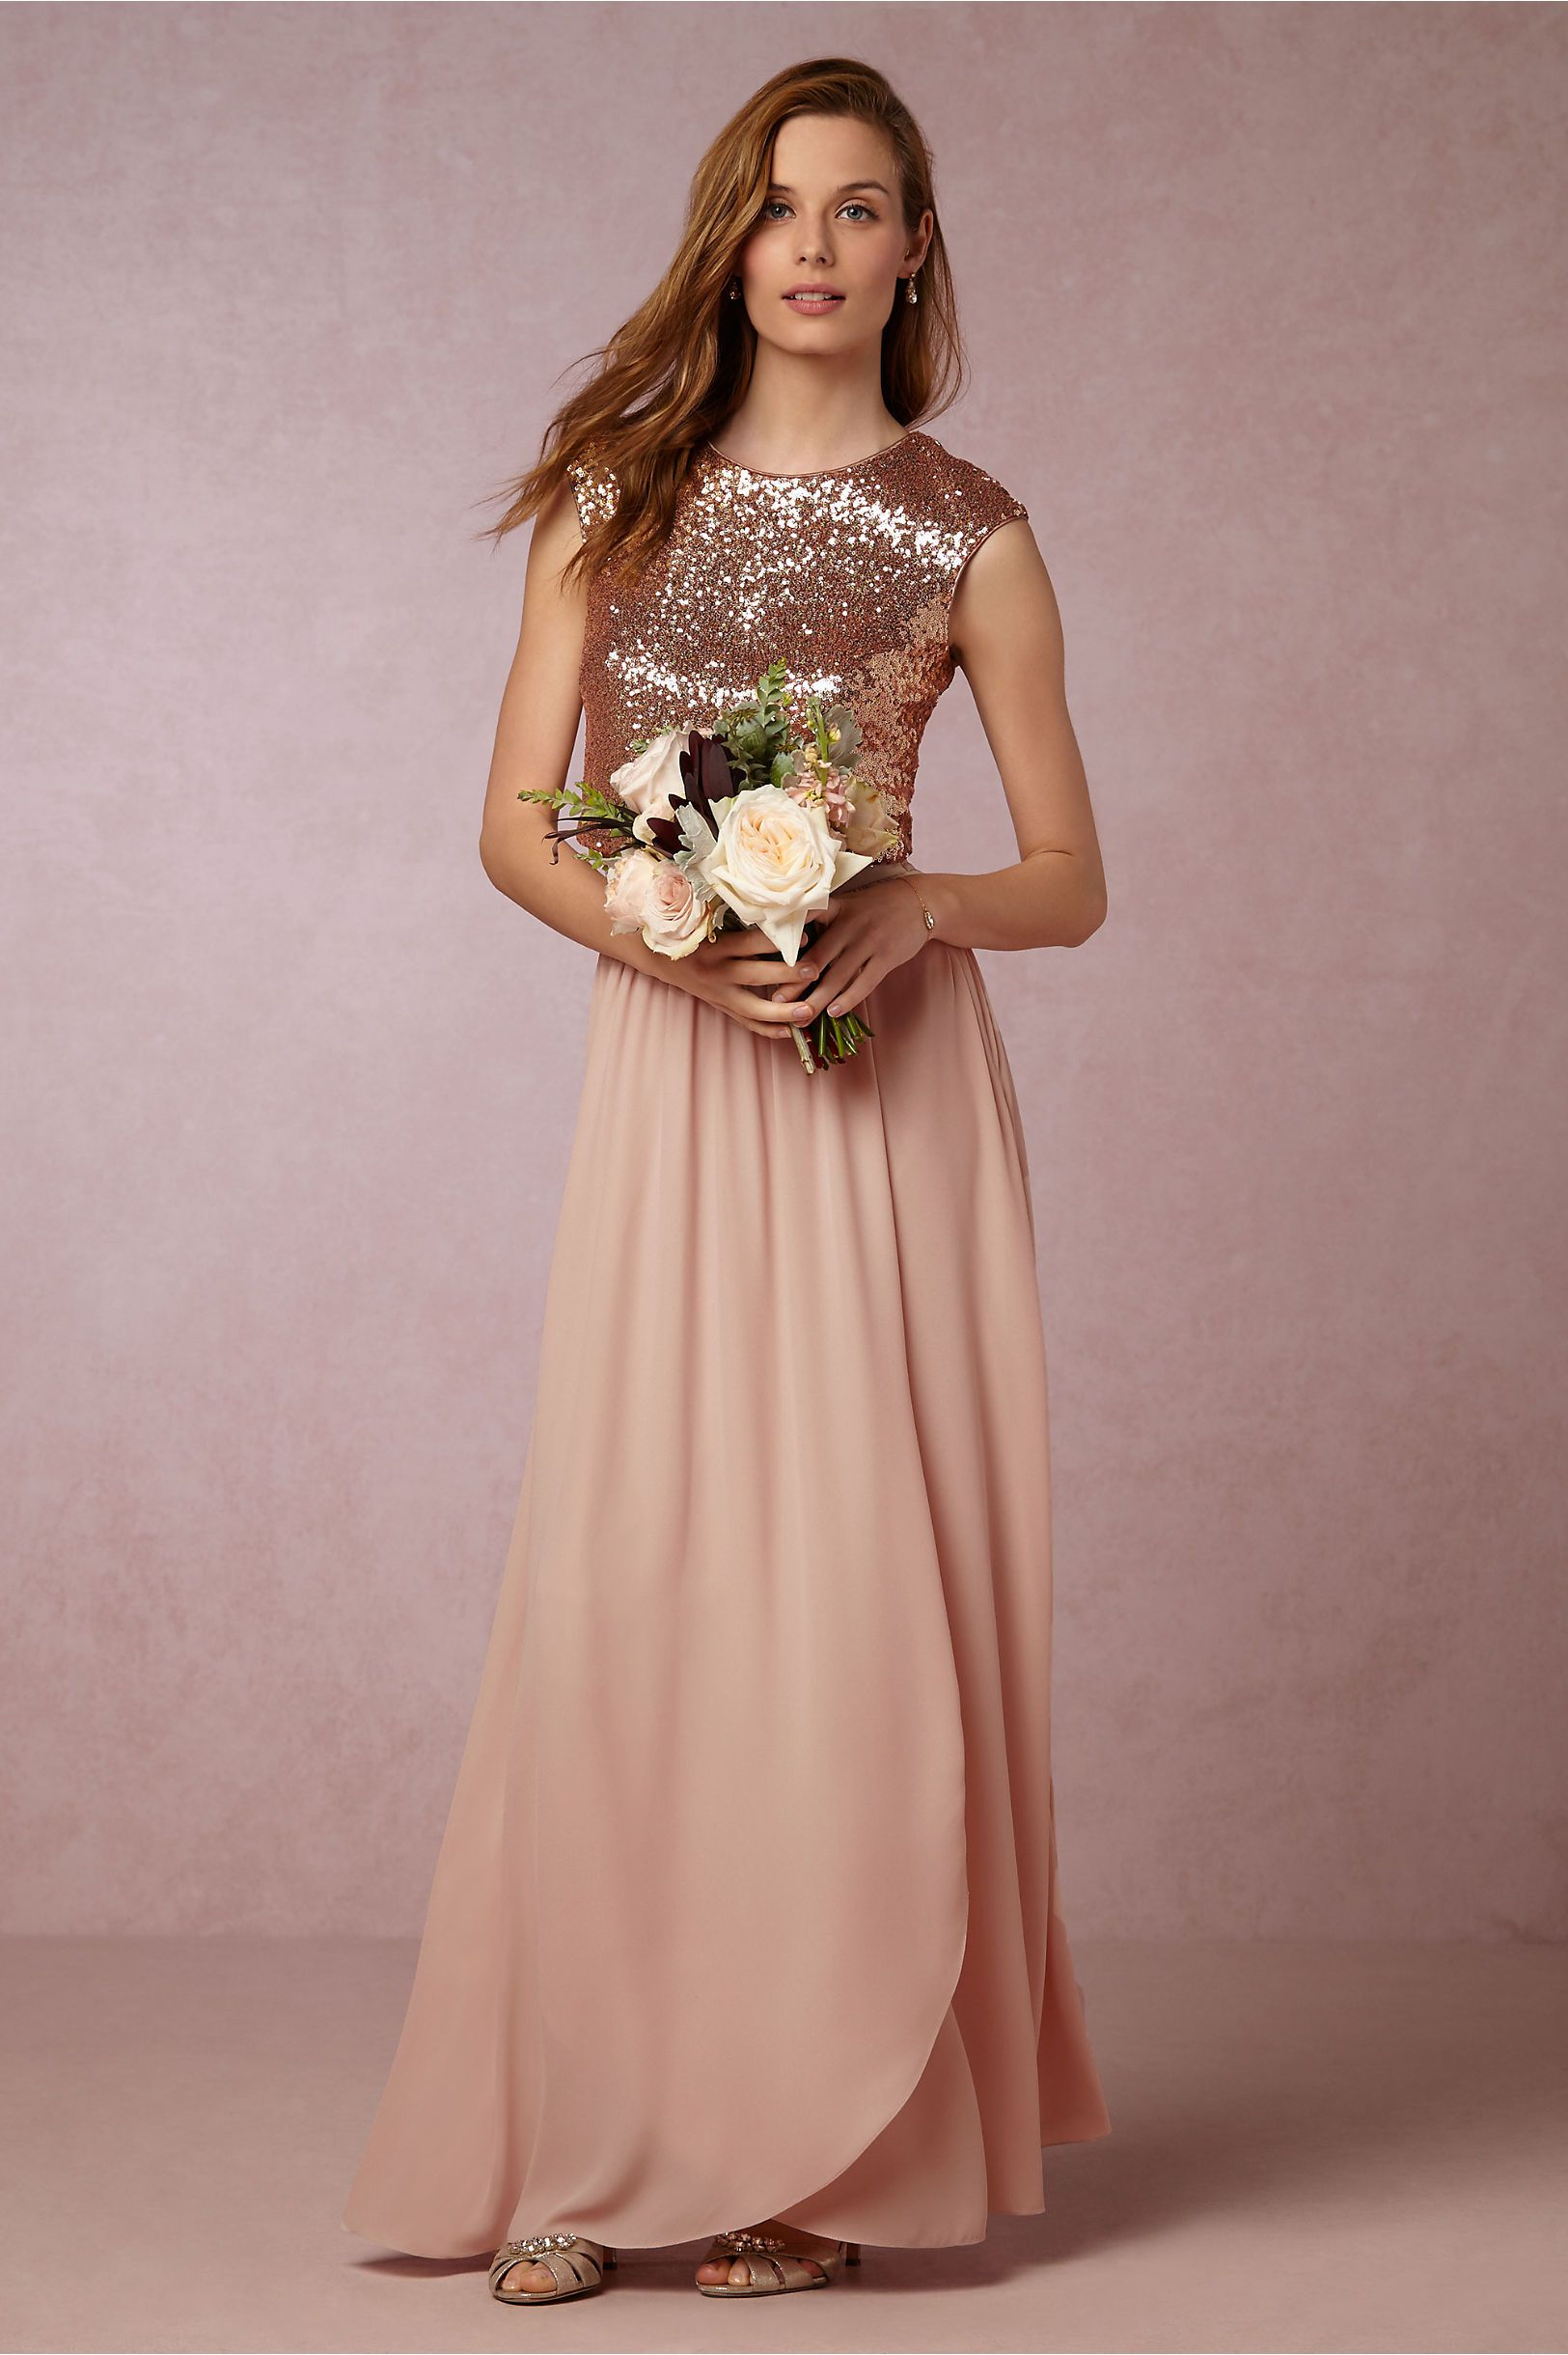 Rose gold sequinned top and taupe skirt gorgeous bridesmaid rose gold sequinned top and taupe skirt gorgeous bridesmaid dresses two piece ombrellifo Gallery